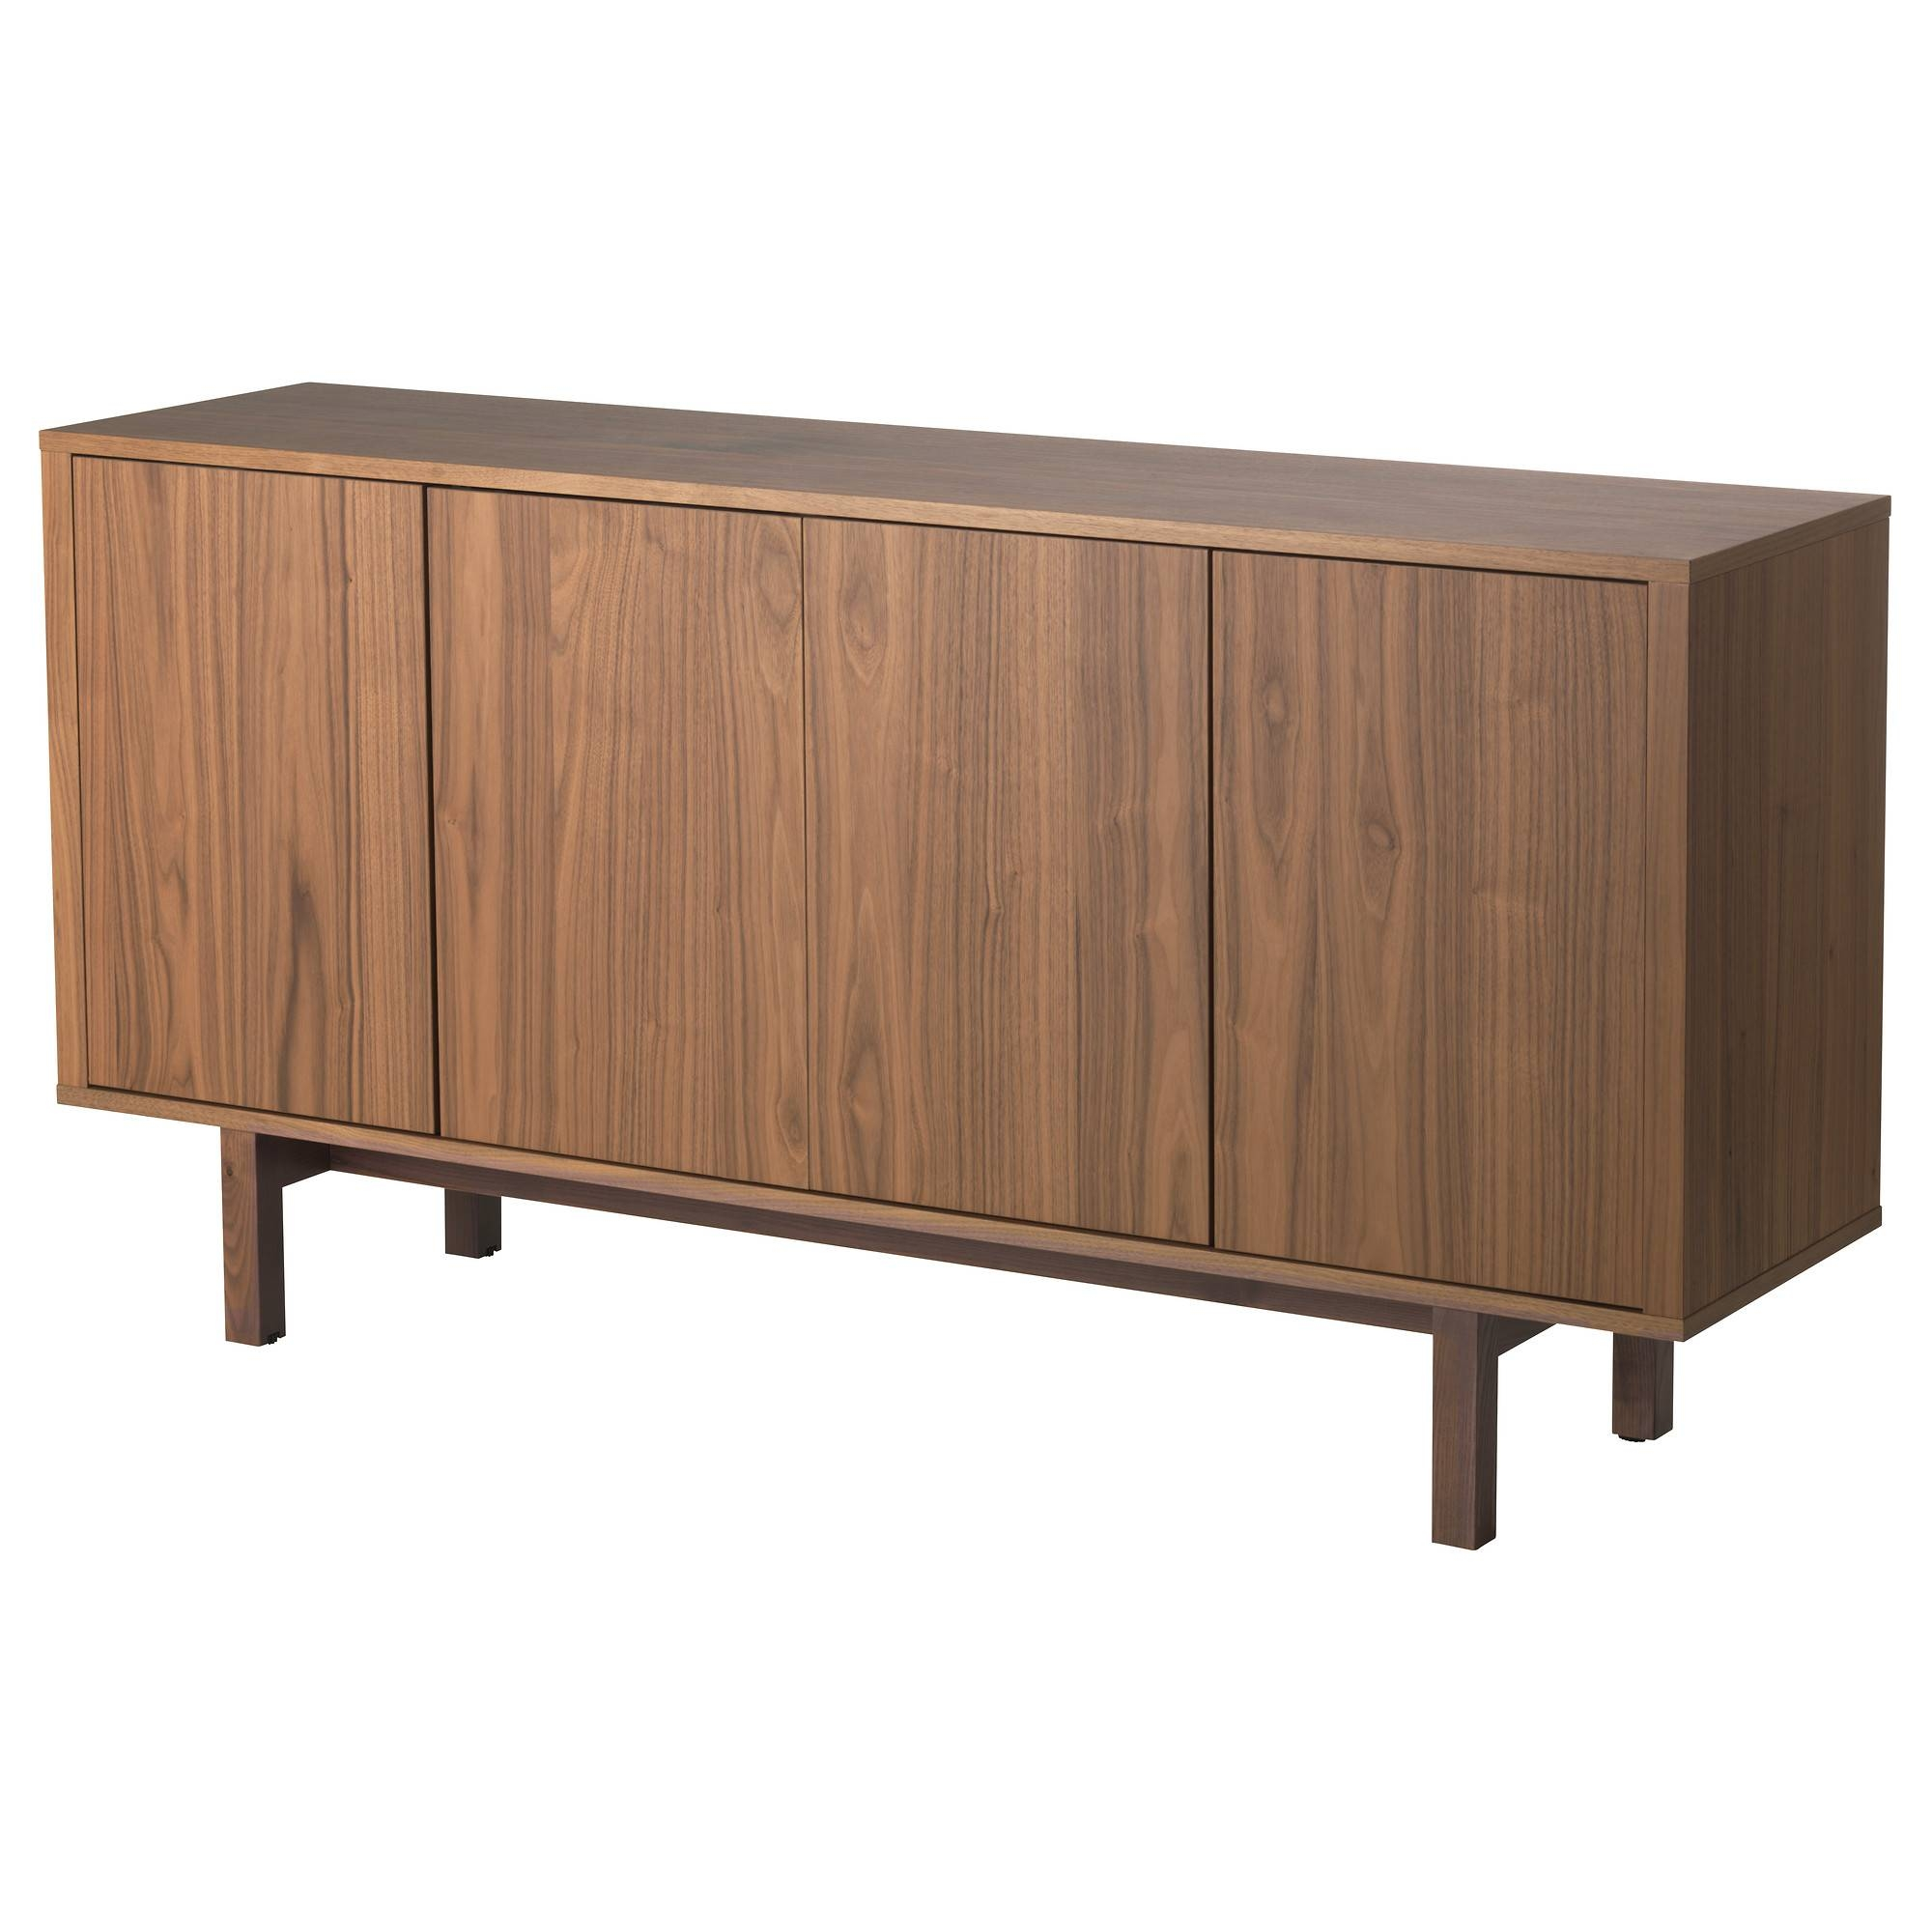 Buffet Tables & Sideboards - Ikea pertaining to Ikea Bjursta Sideboards (Image 2 of 15)